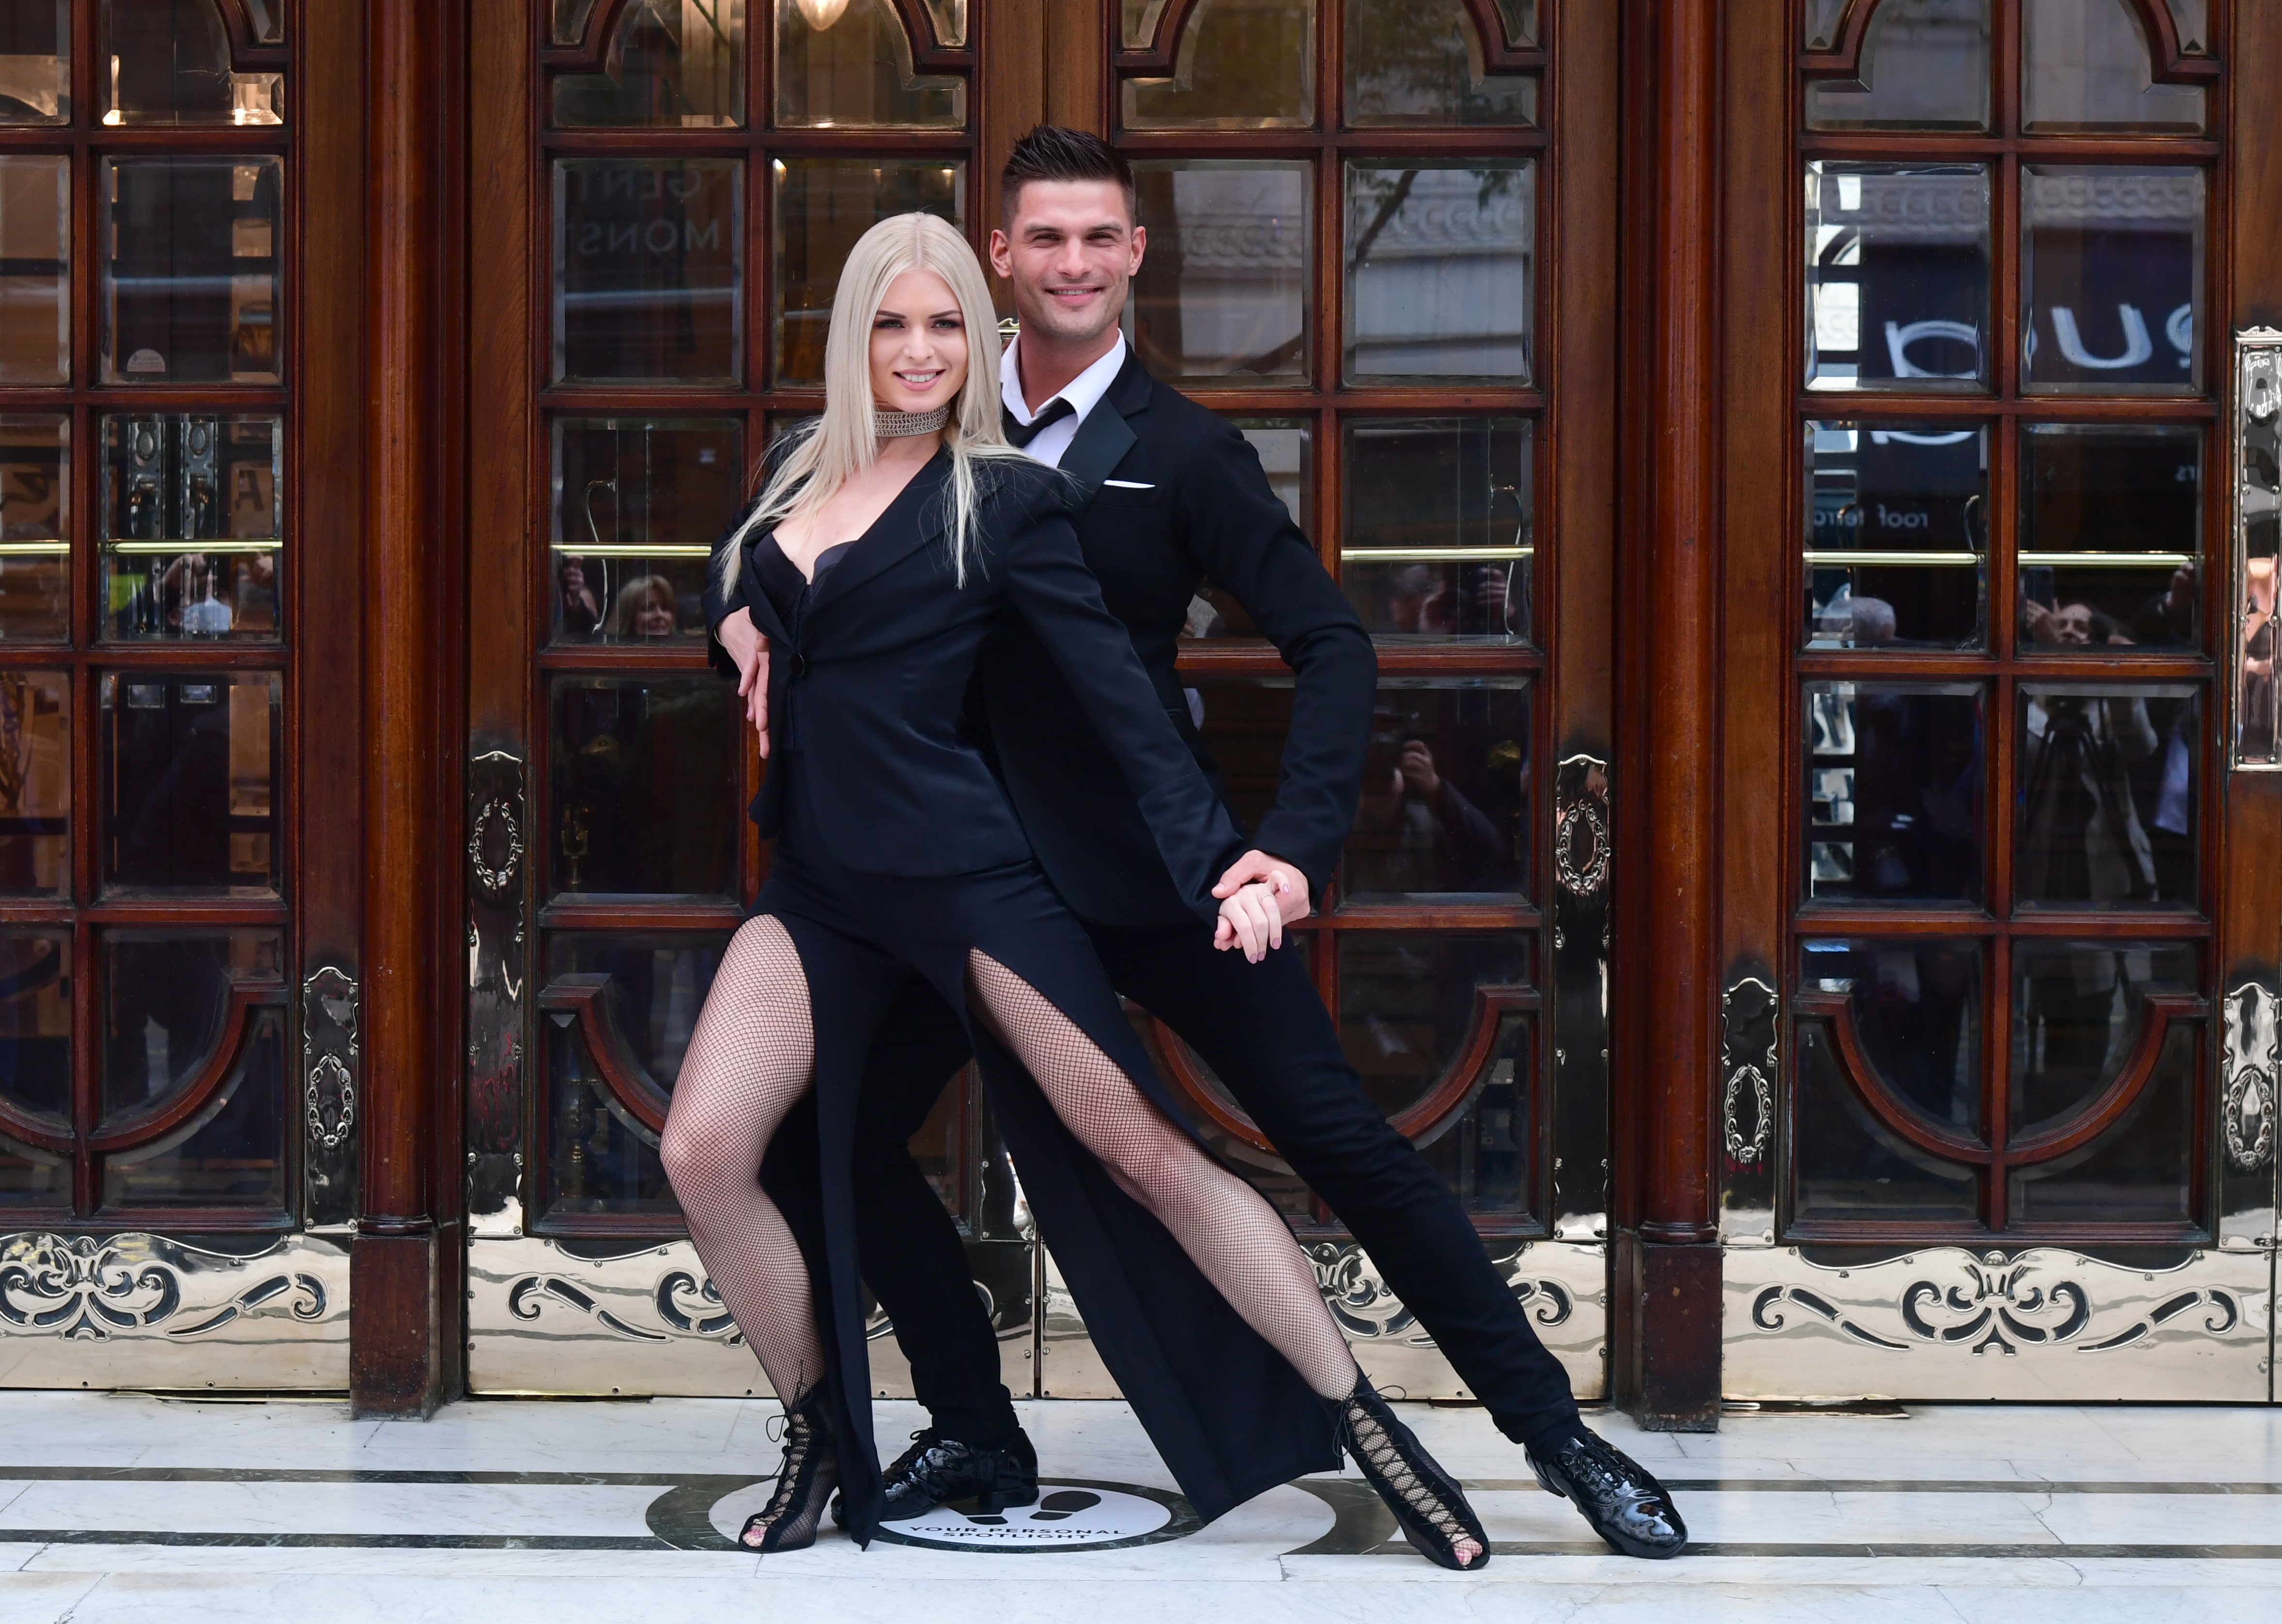 <p>Stricly Come Dancing stars Aljaz Skorjanec and Nadiya Bychkova launching their new show, Here Come the Boys, at the London Palladium. Picture date: Tuesday May 25, 2021.</p>